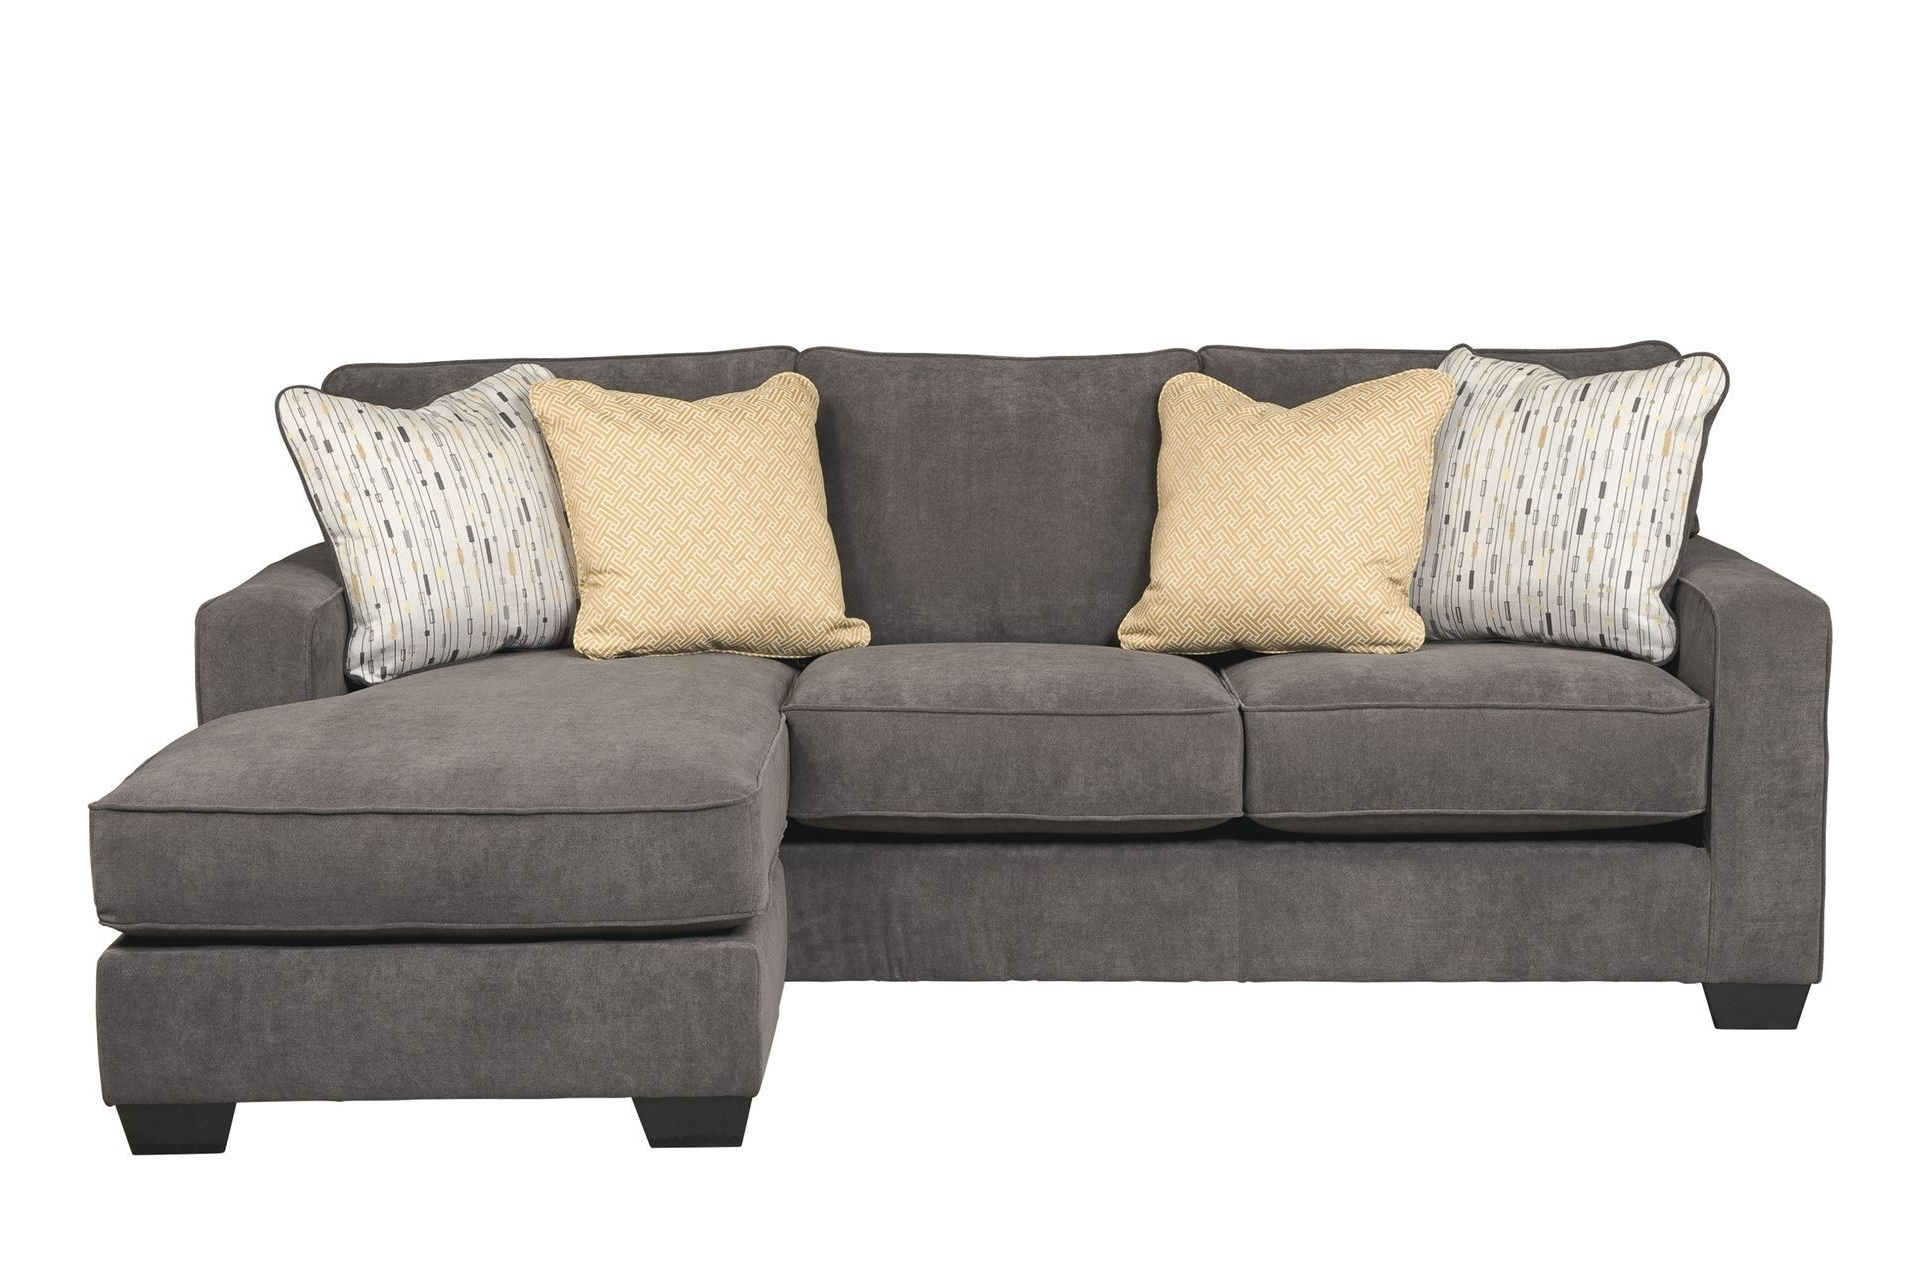 Living Spaces, Living Rooms And Apartments Pertaining To Favorite Gray Sofa With Chaise (View 8 of 15)